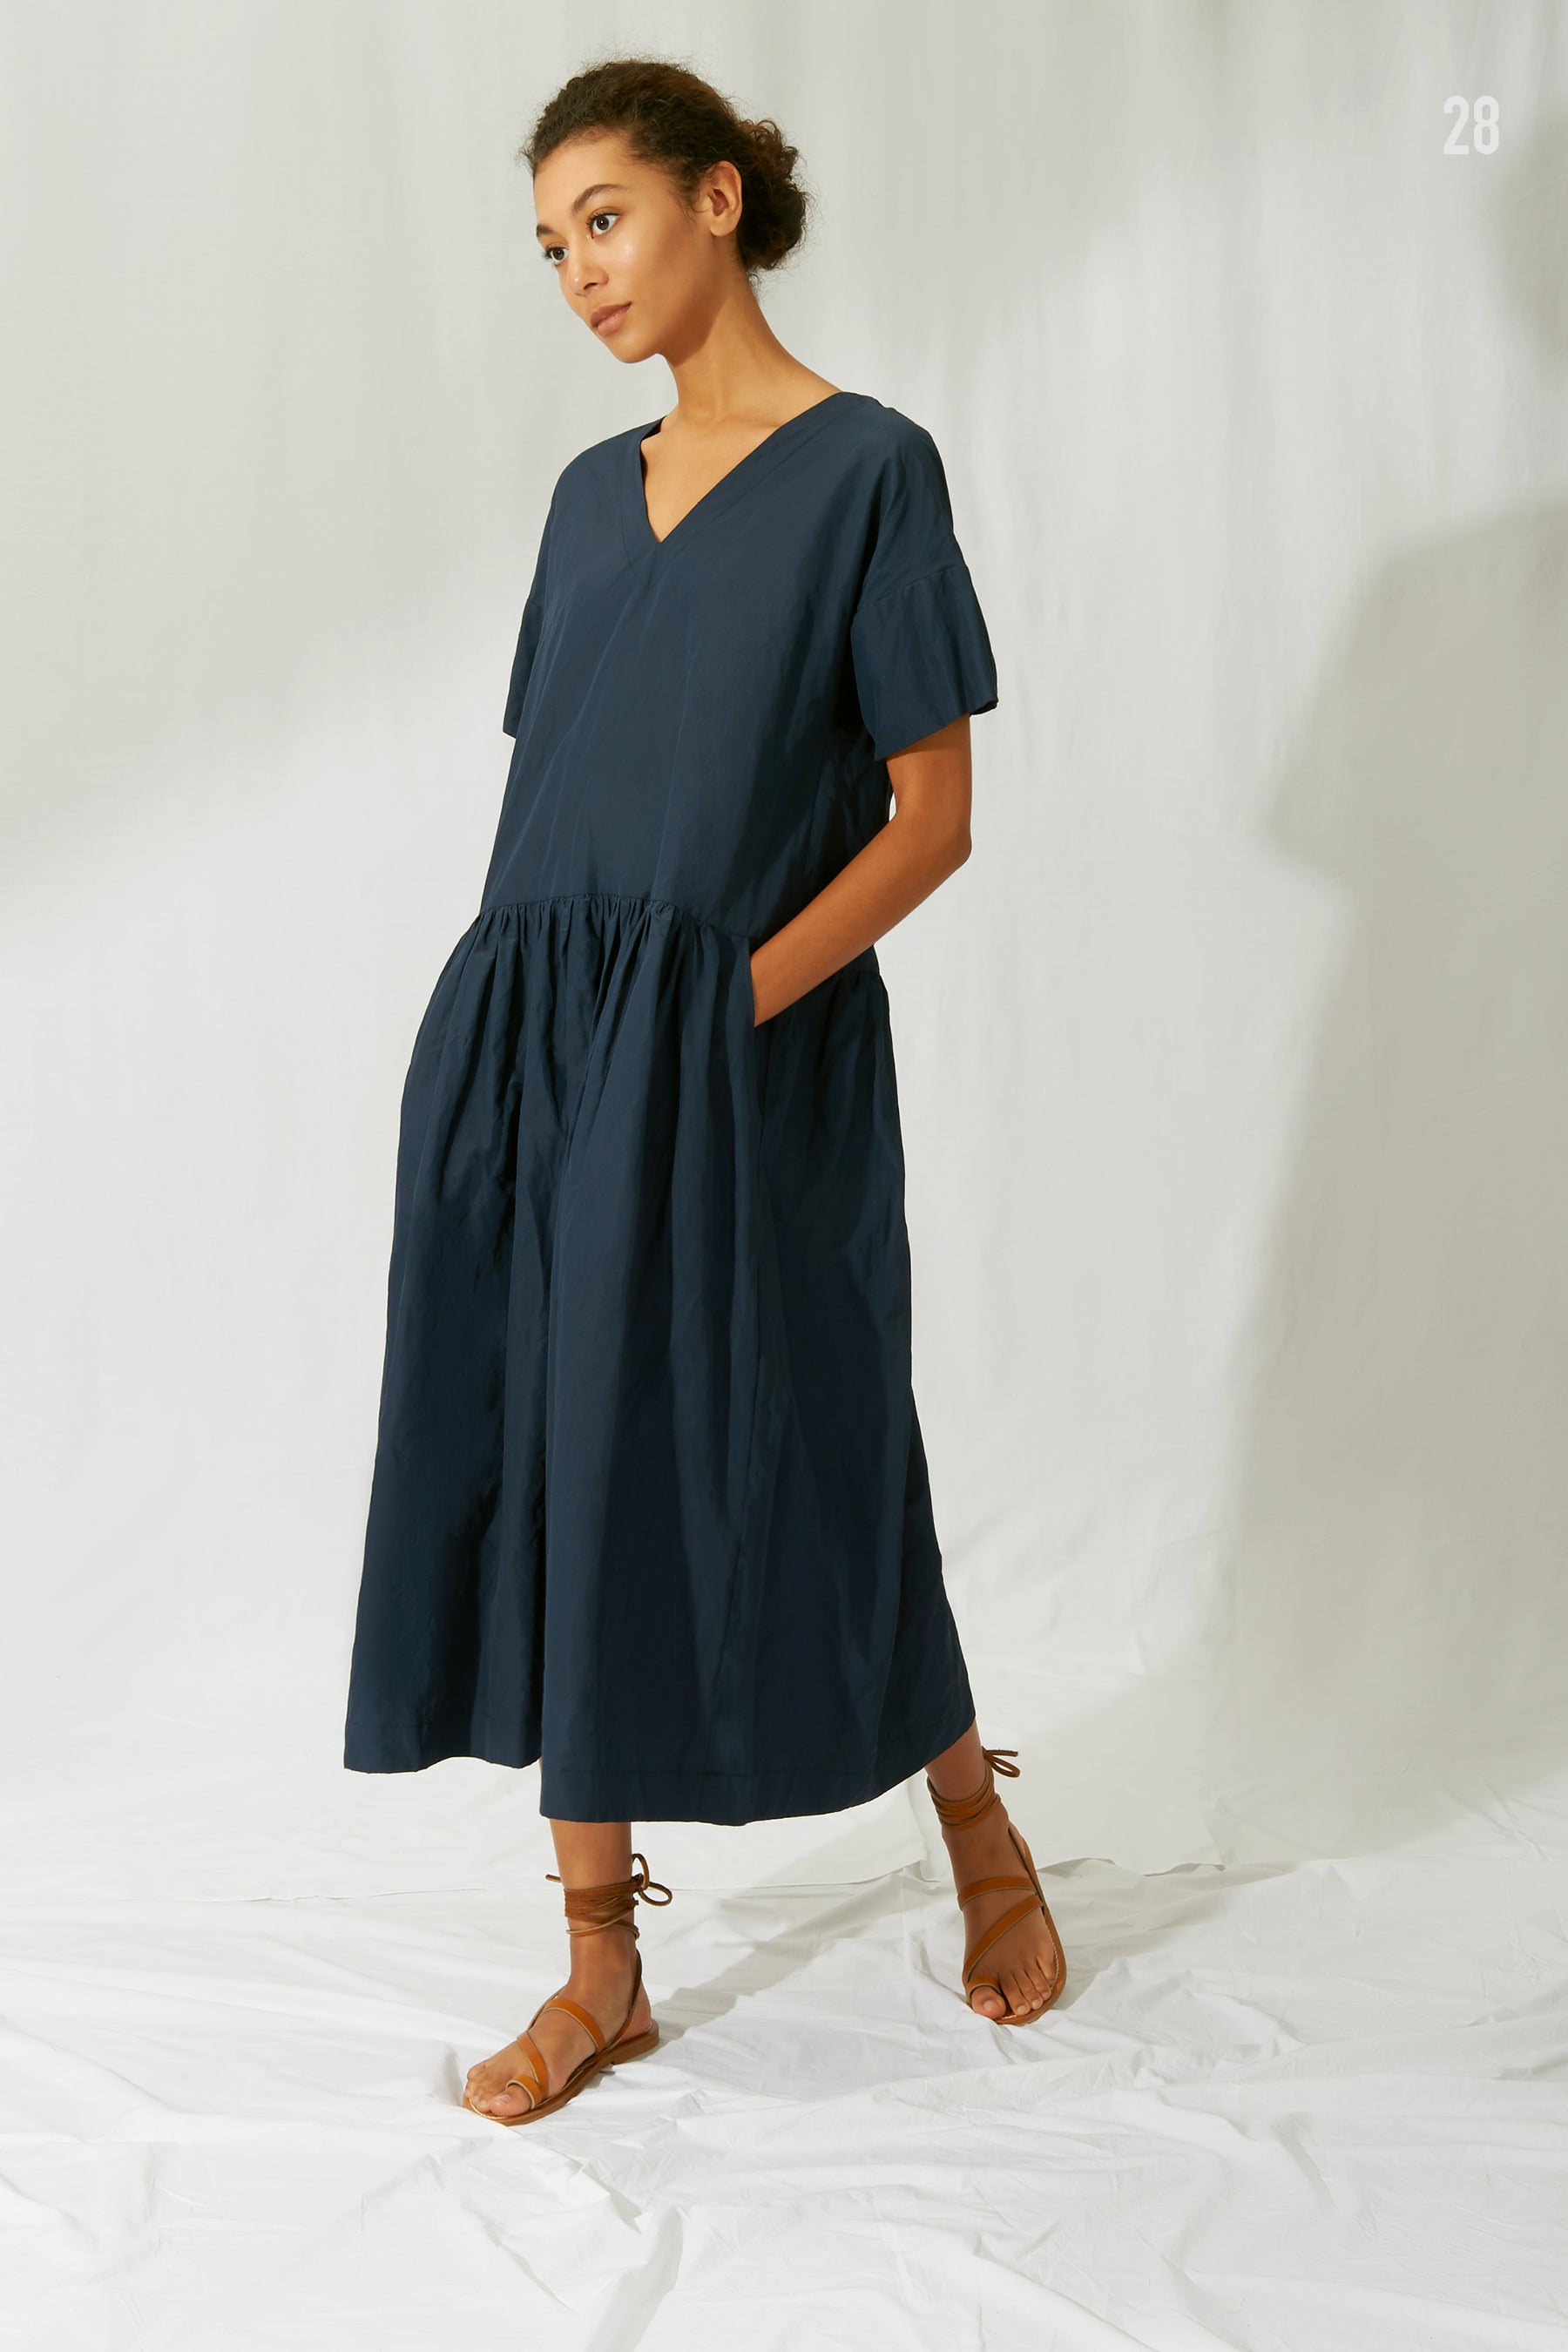 Kal Rieman Spring 2020 Lookbook Look 28